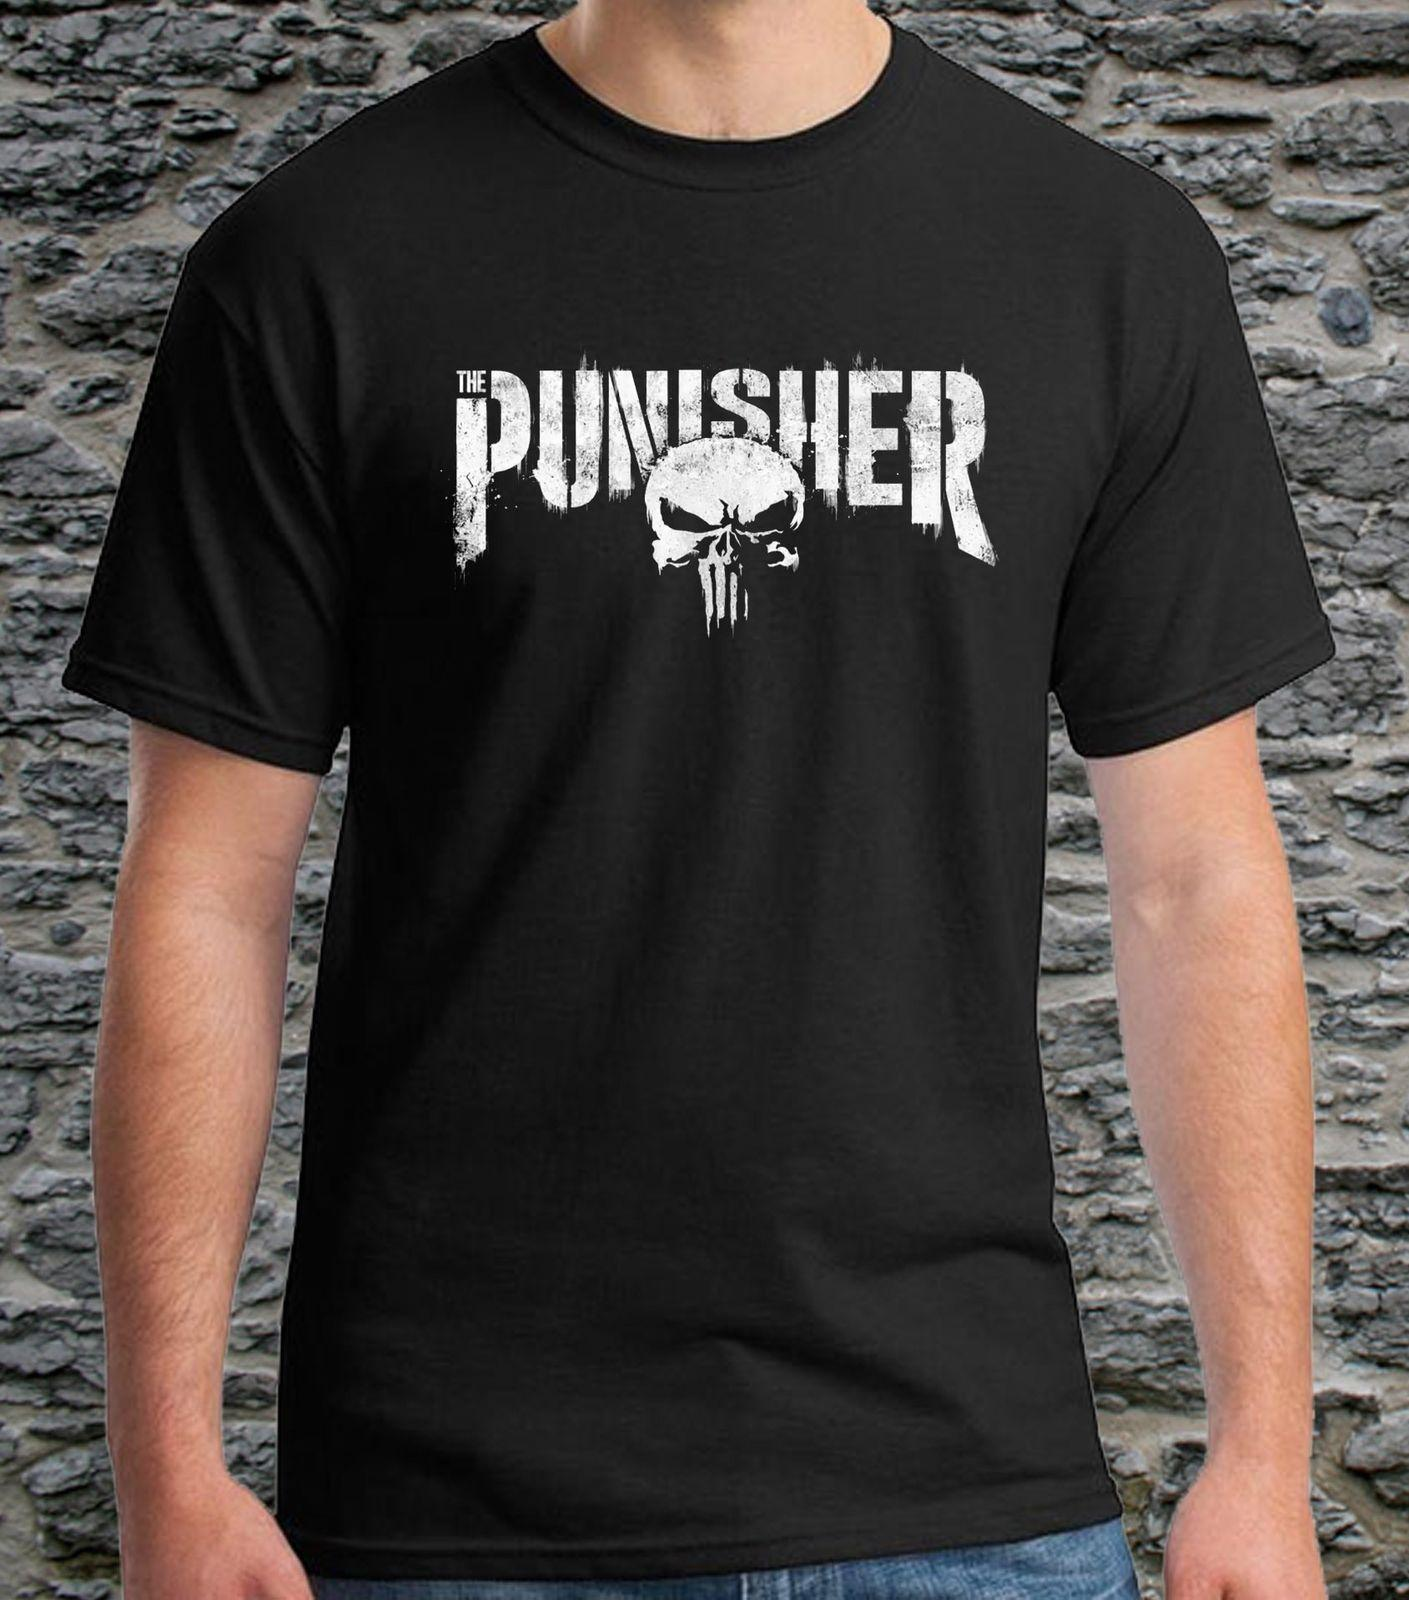 7d29ea51a Black T-shirts The Punisher Marvel Logo Men's Tee Size S to 3XL